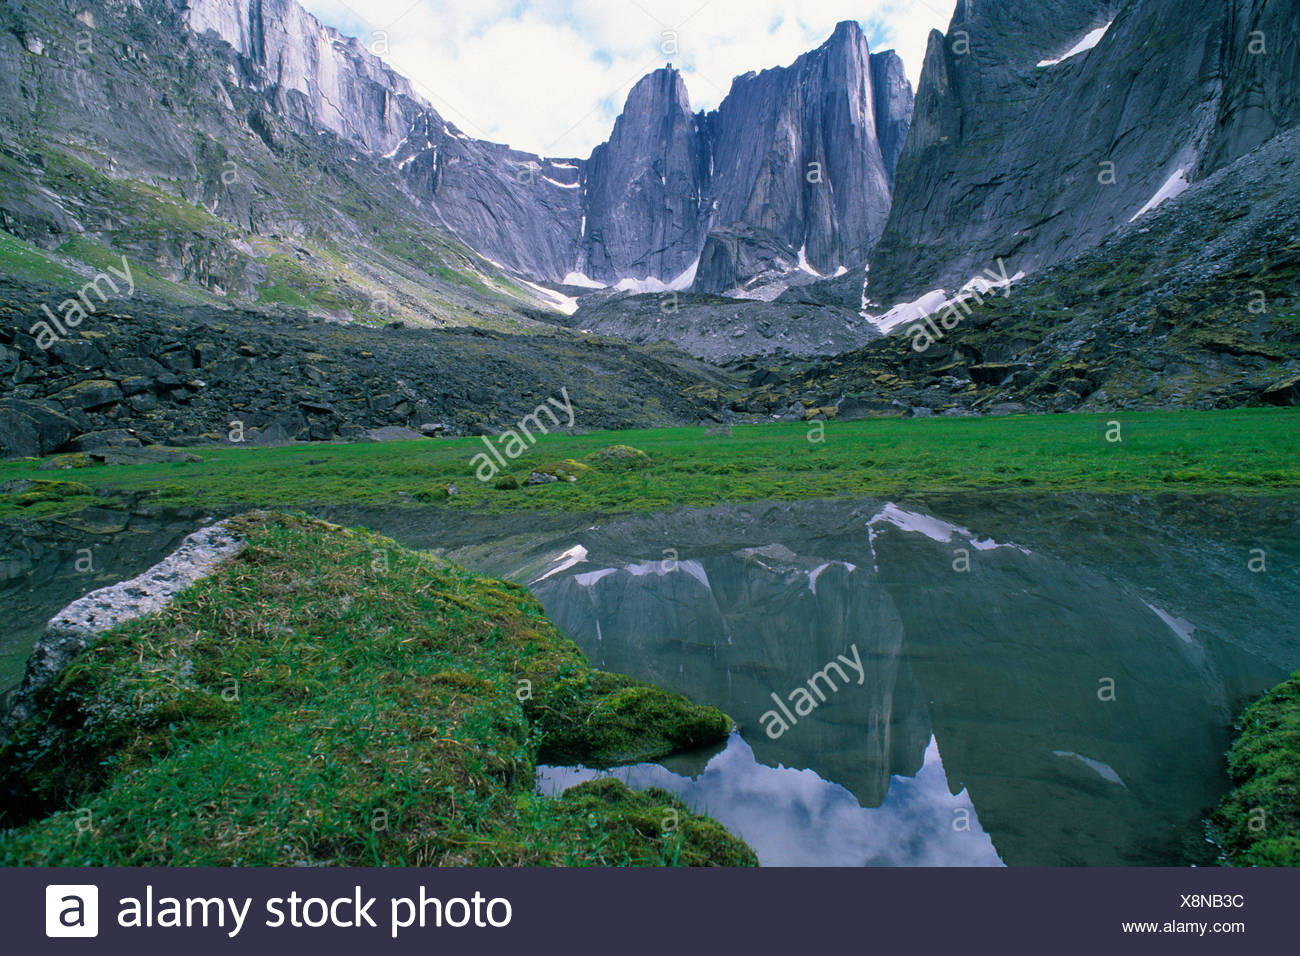 Lotus flower tower stock photos lotus flower tower stock images the lotus flower tower reflected in a stream in fairy meadows in the cirque of the izmirmasajfo Image collections